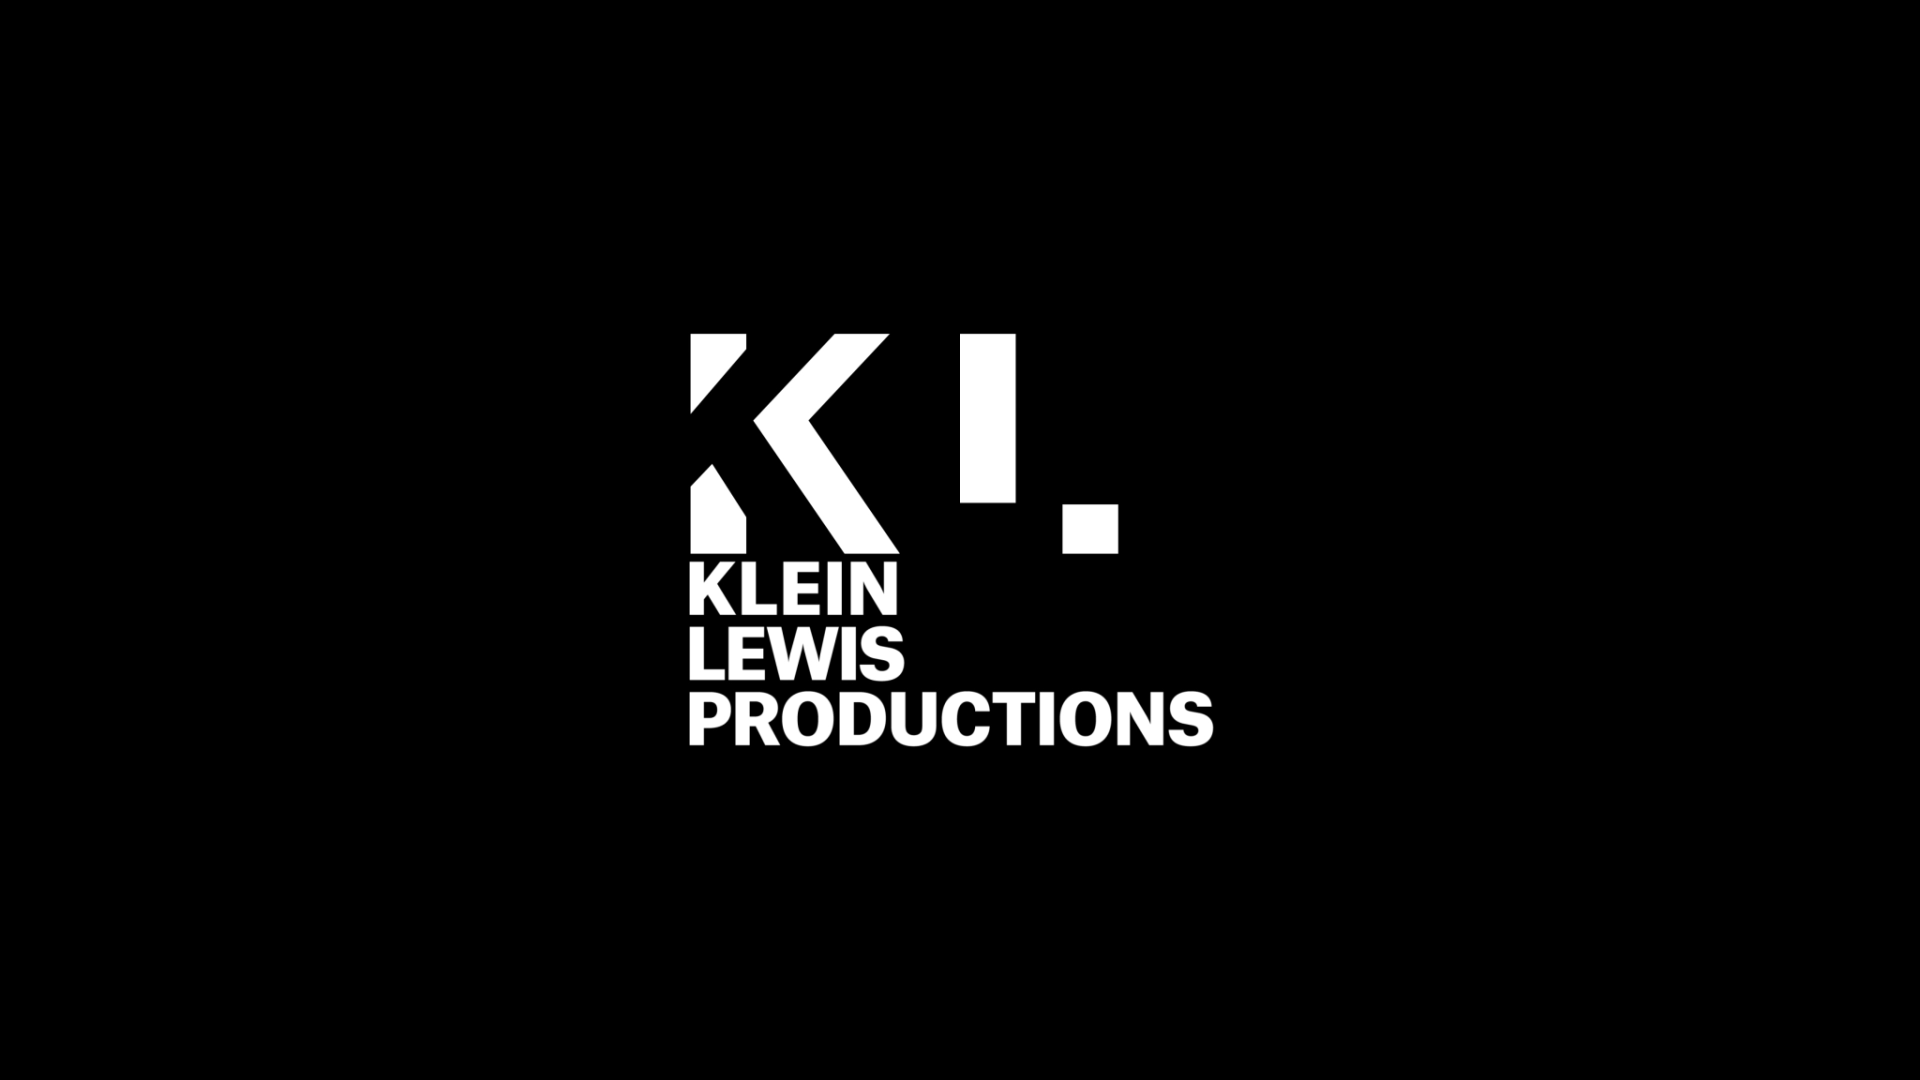 Klein Lewis Productions